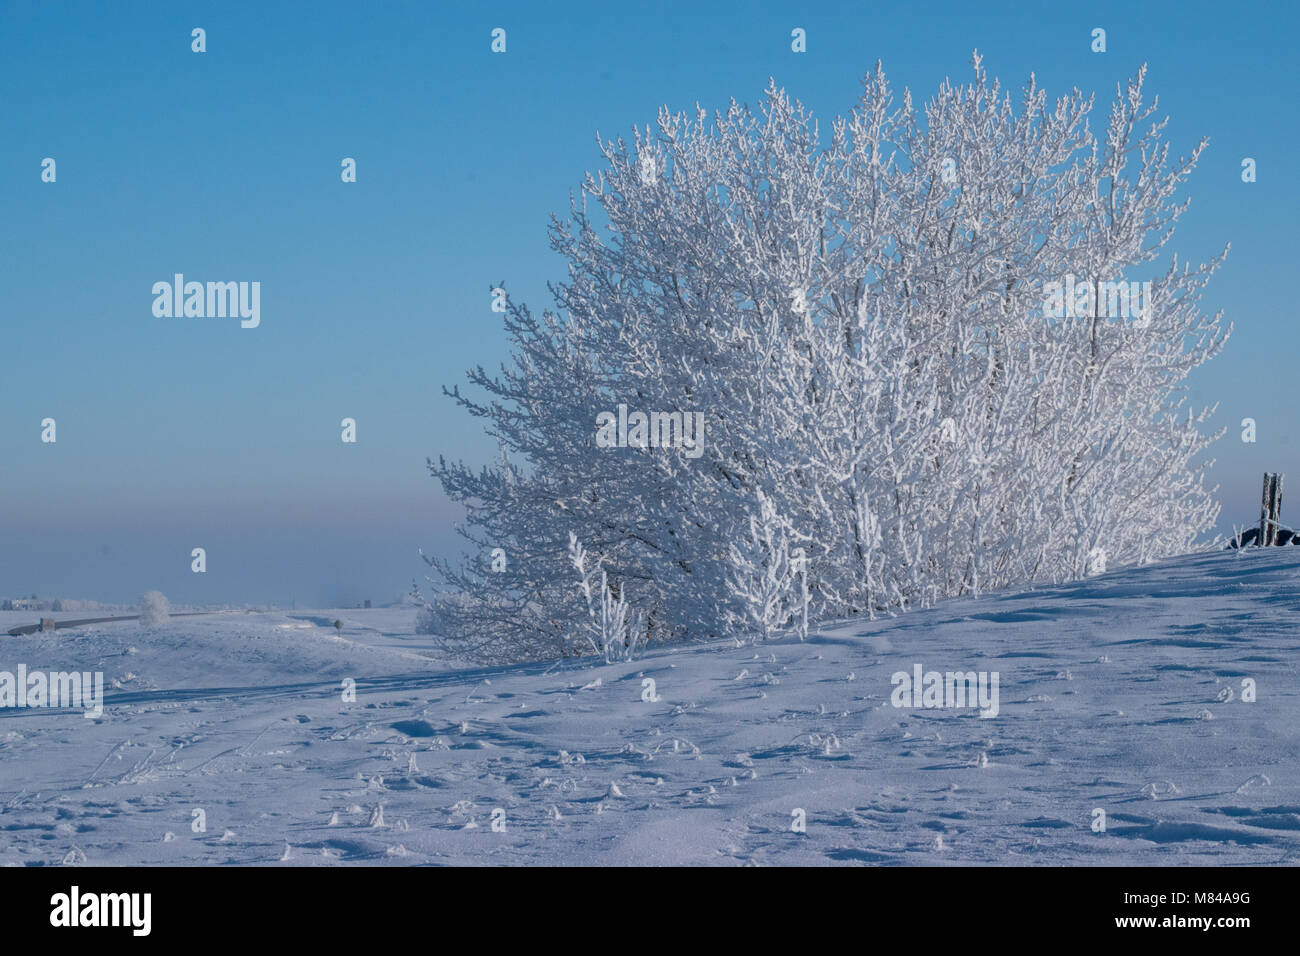 Heavily Frosted Trees against a Robin Egg Blue Sky - Stock Image